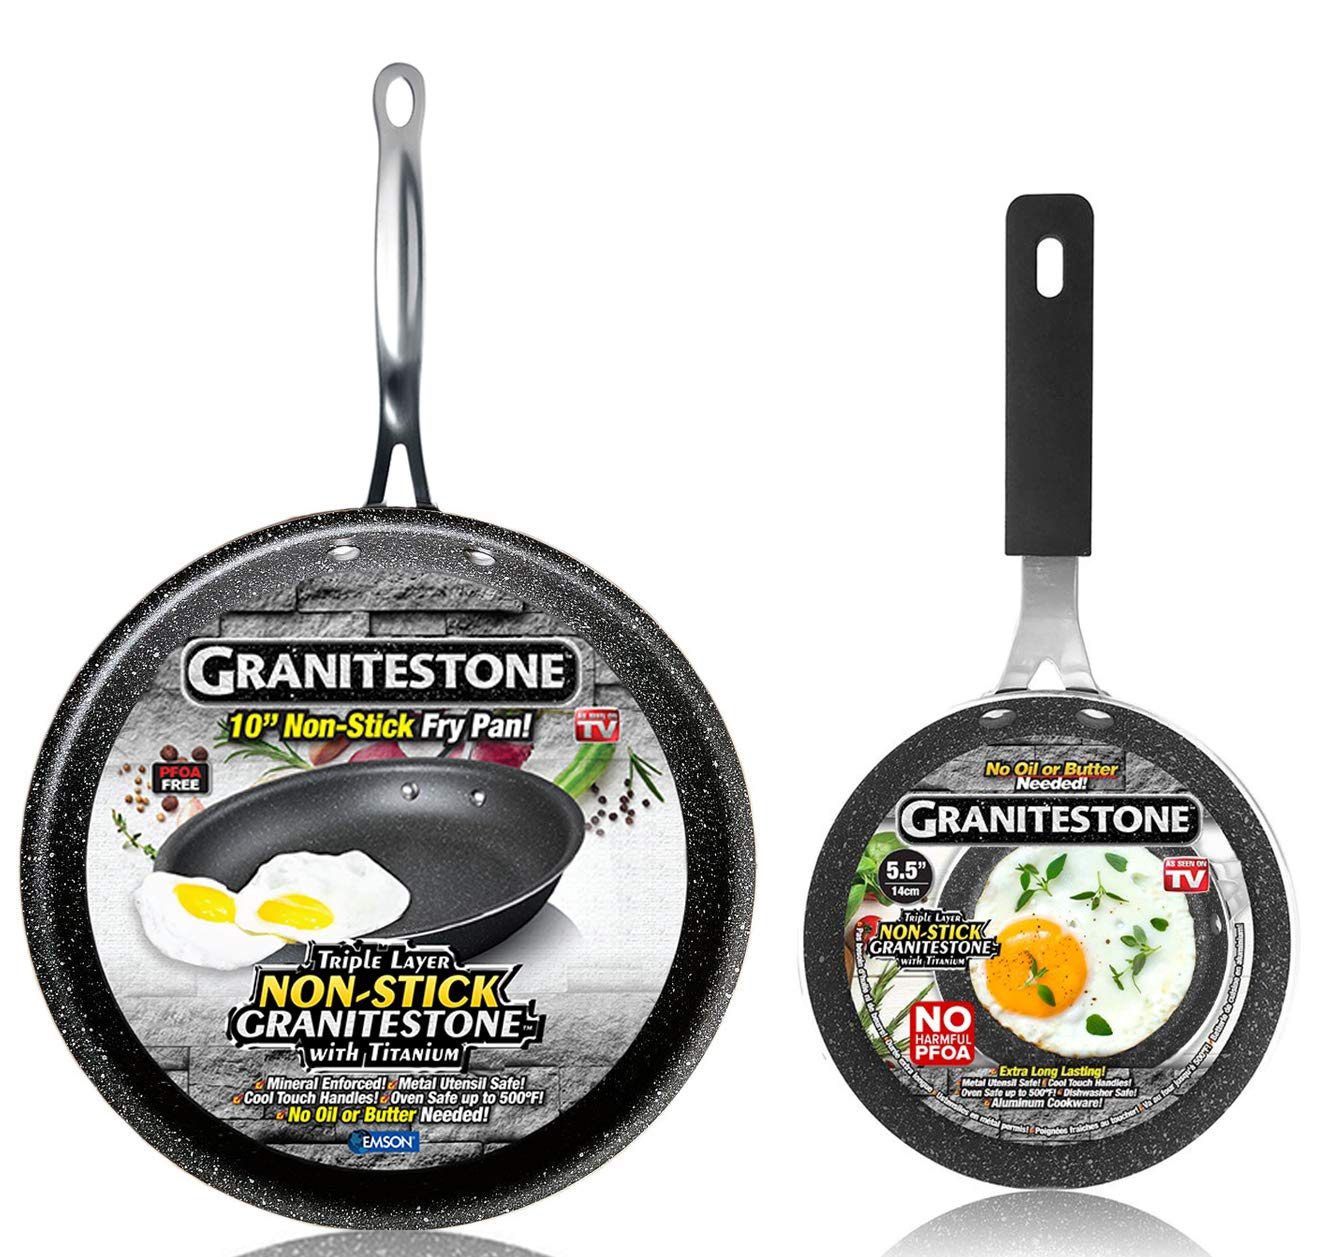 GRANITESTONE 10'' Frying Pan Skillet with 5.5'' Eggpan, Non-stick, No-warp, Mineral-enforced, PFOA-Free, Dishwasher-safe As Seen On TV